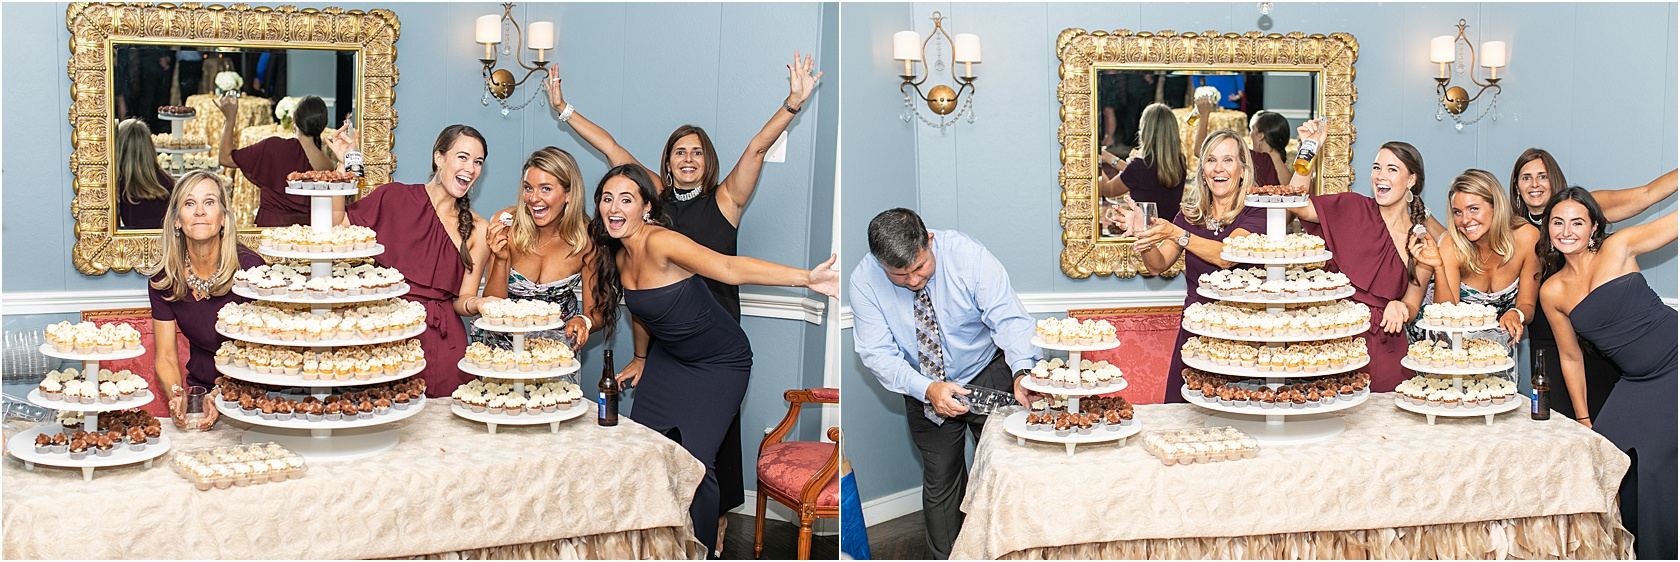 Love this. The baking team was a family attending the wedding and we told them they were a real vendor… they cheered!